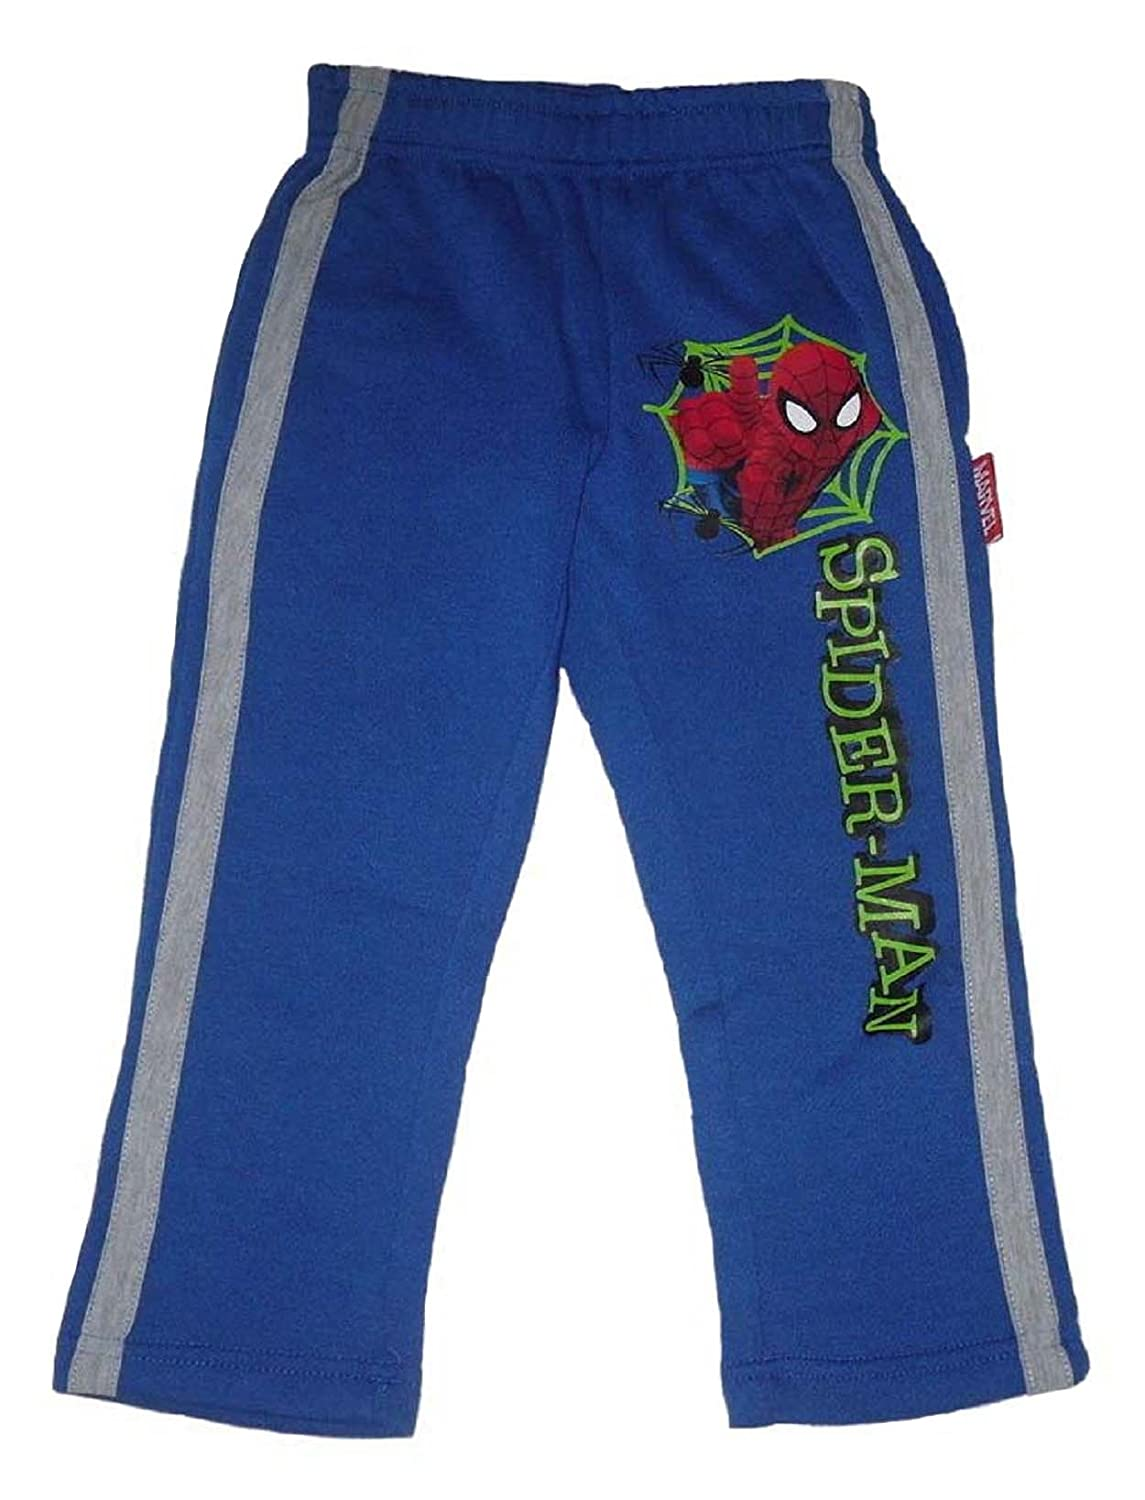 Boys Jogging Bottoms Spiderman 2-8 Years Blue Or Grey